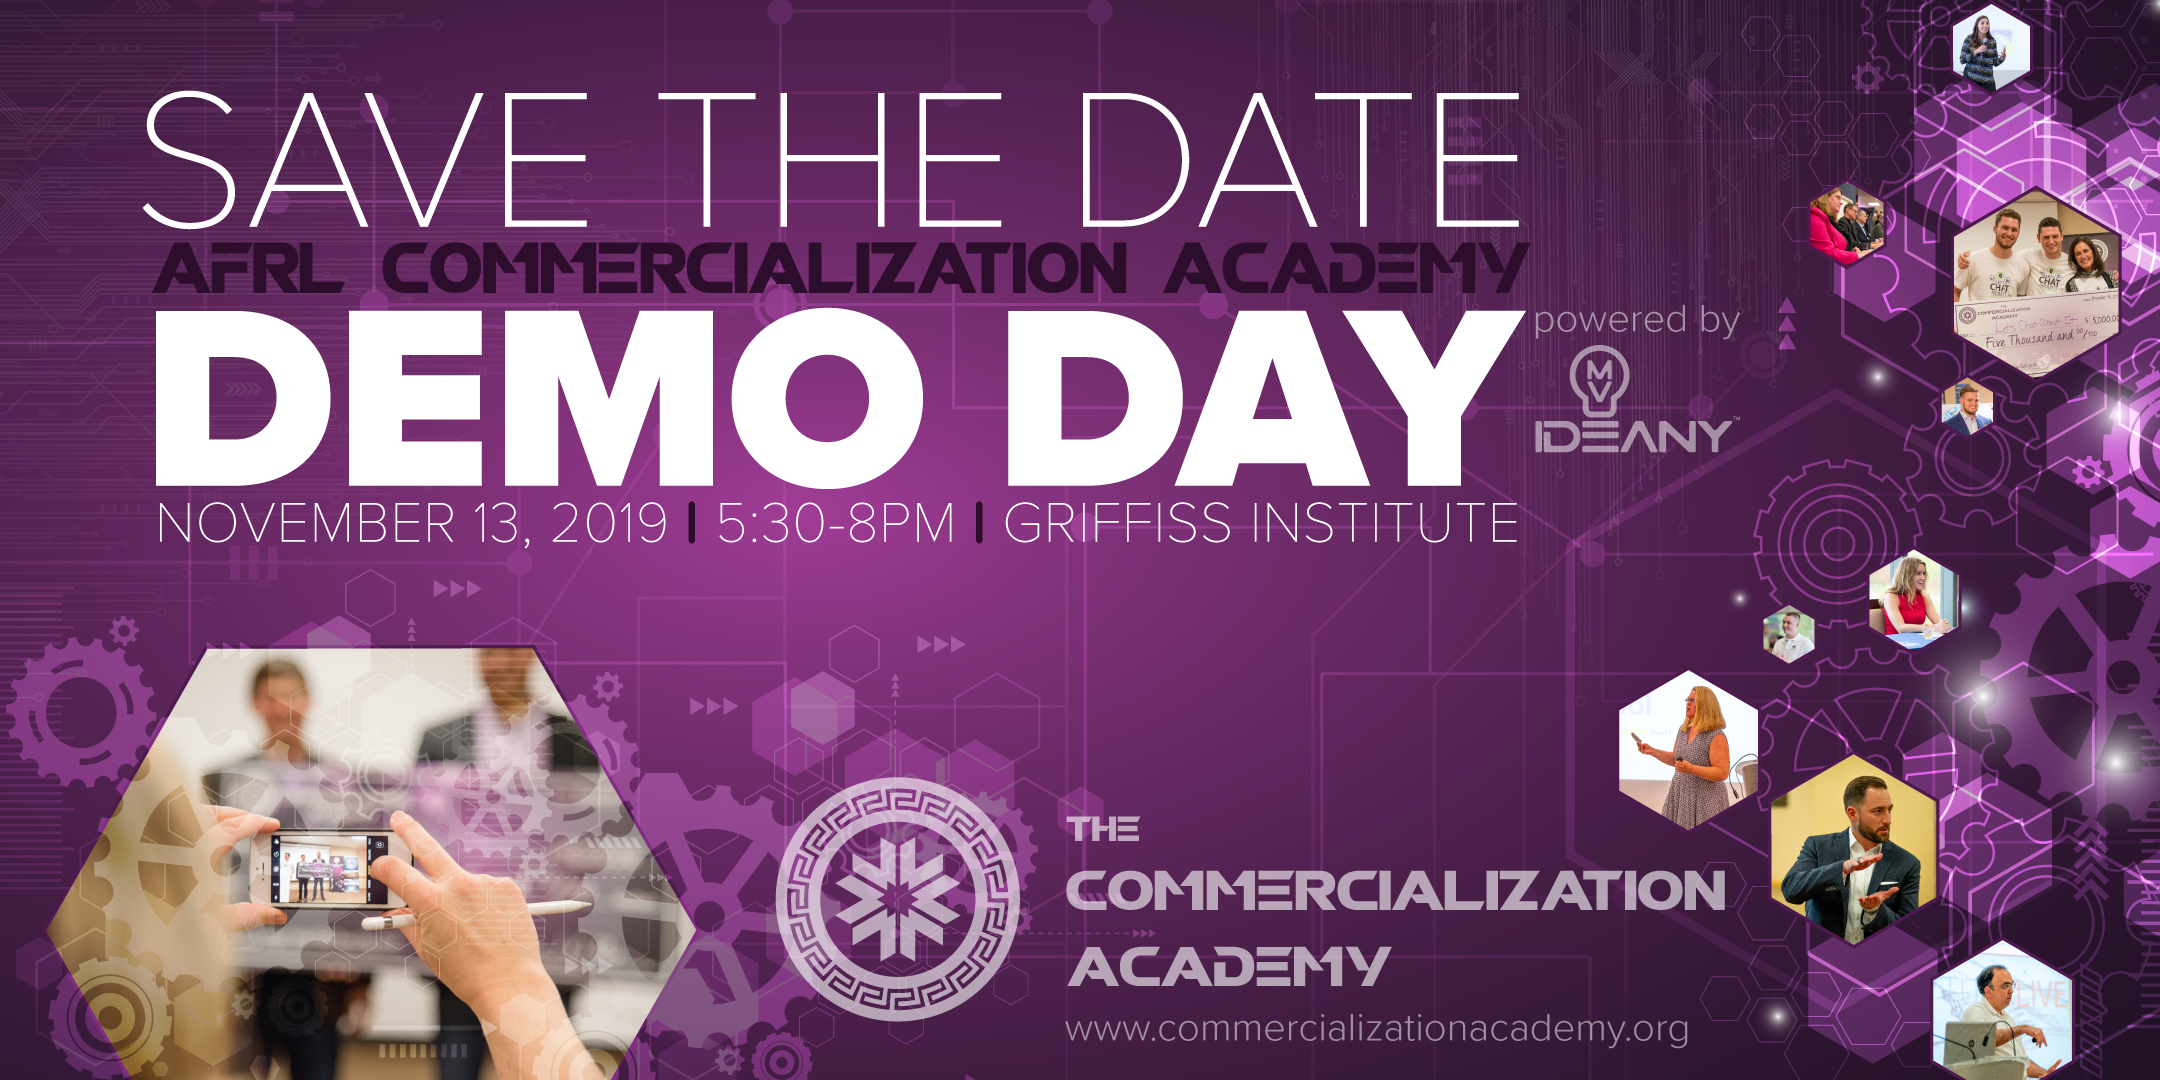 Fall 2019 AFRL Commercialization Academy Demo Day